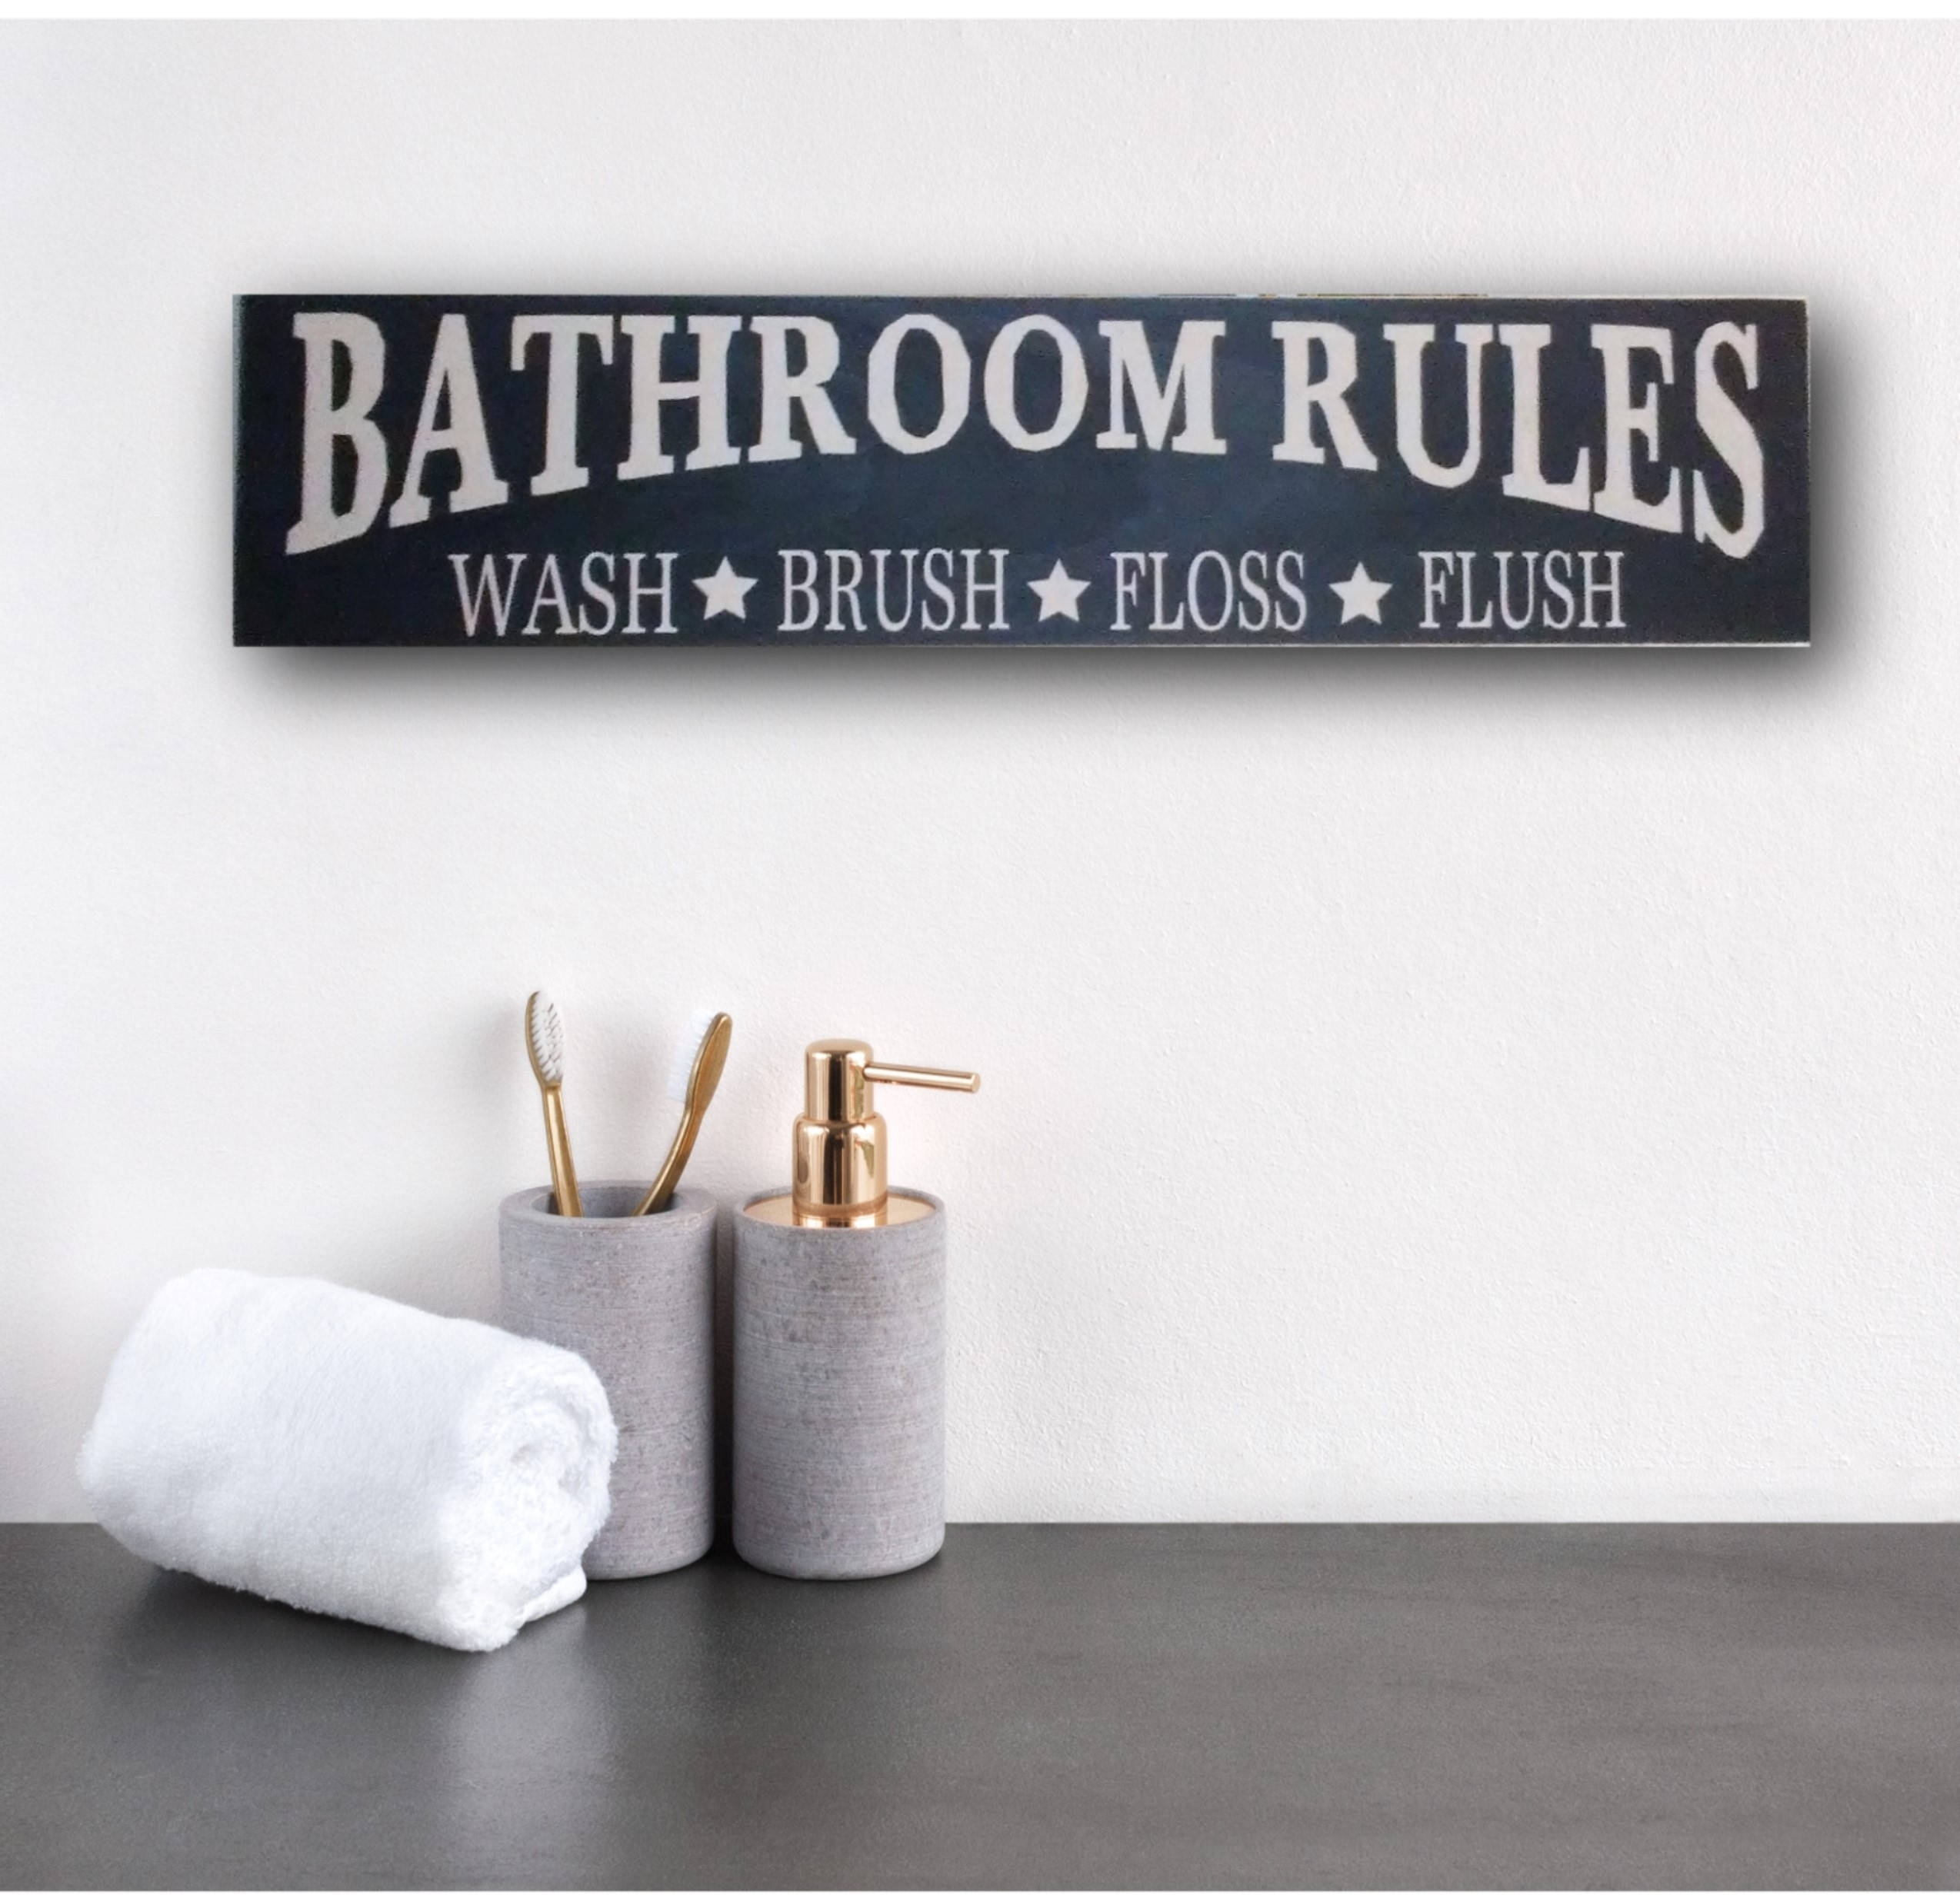 Rustic Bathroom Sign, Rustic Bathroom Rules Sign, Rustic Bathroom Intended For Most Recently Released Bathroom Rules Wall Art (View 7 of 20)